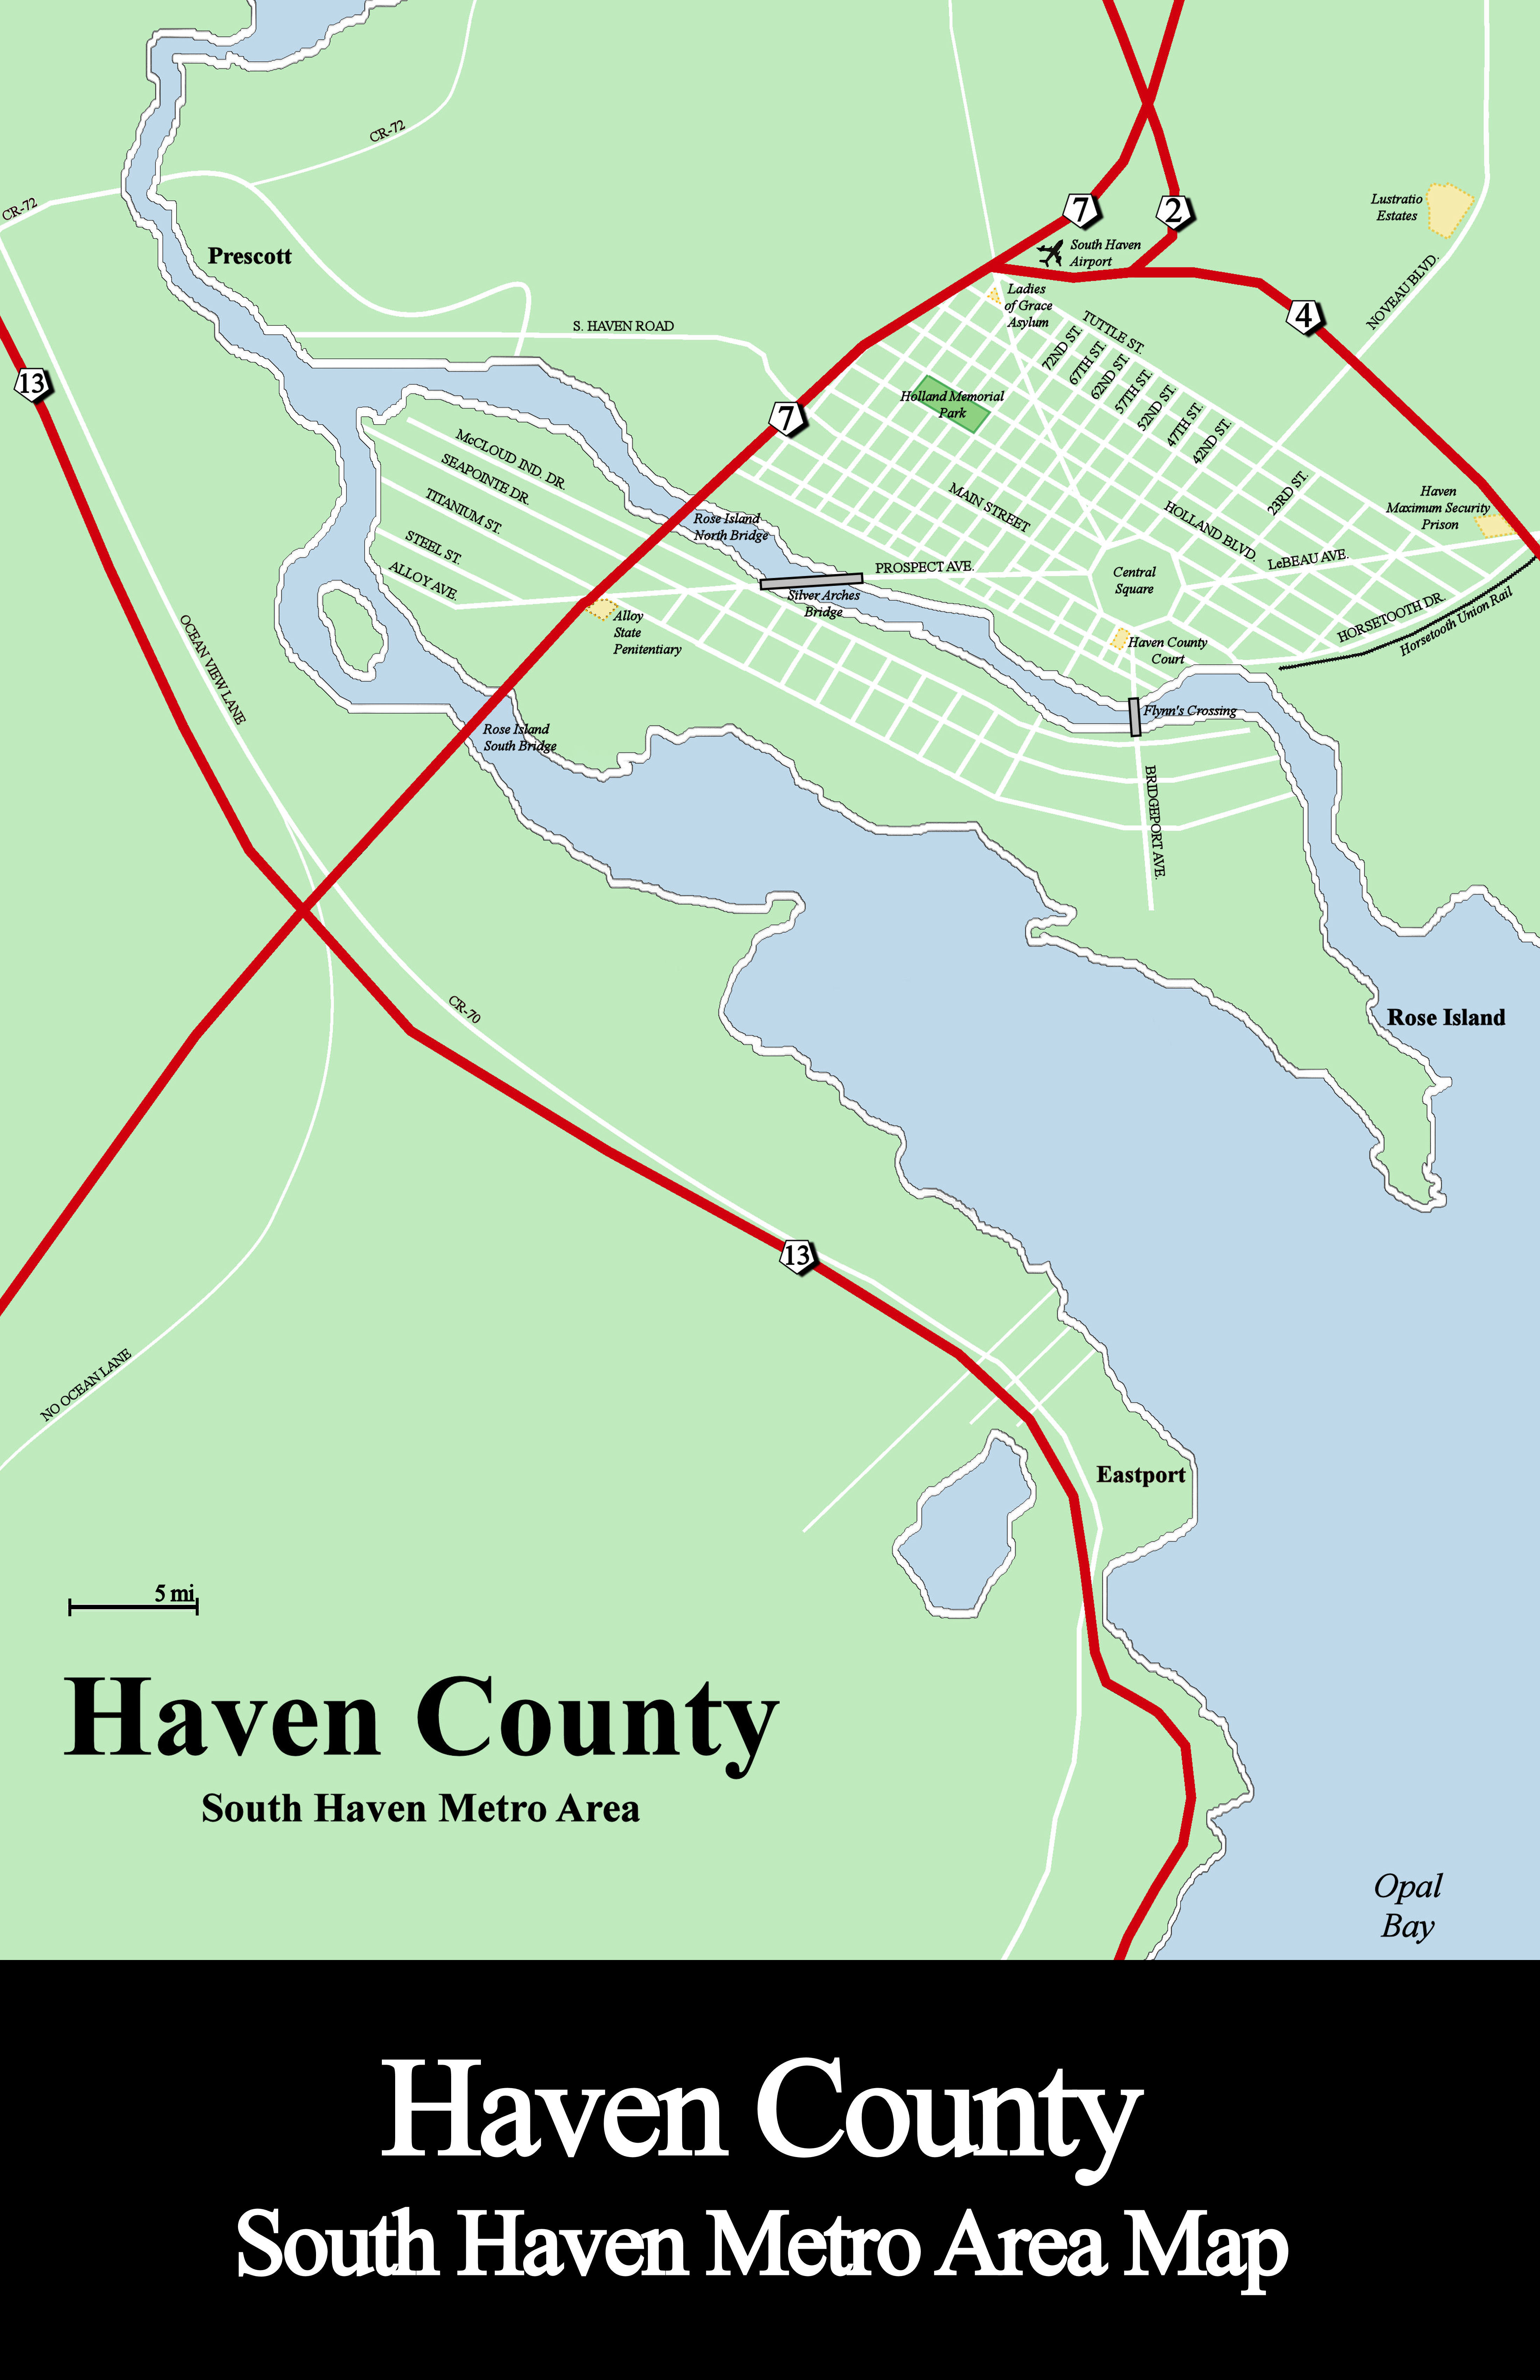 South_Haven_Overview_Map 11x17